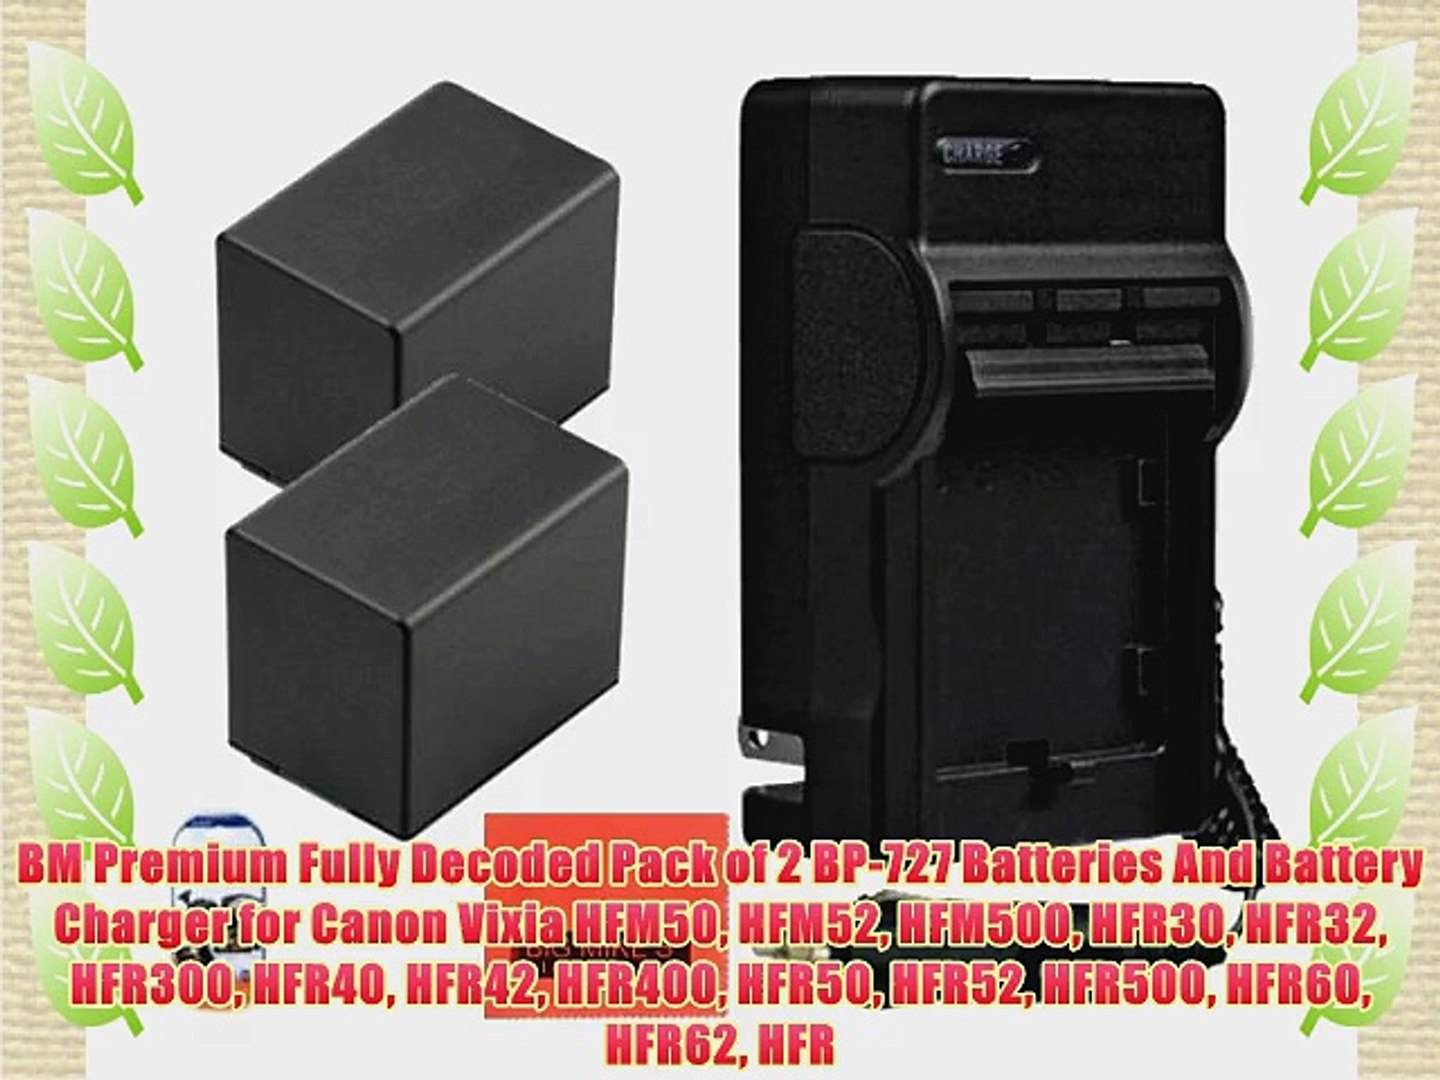 BM Premium Fully Decoded Pack of 2 BP-727 Batteries And Battery Charger for Canon Vixia HFM50